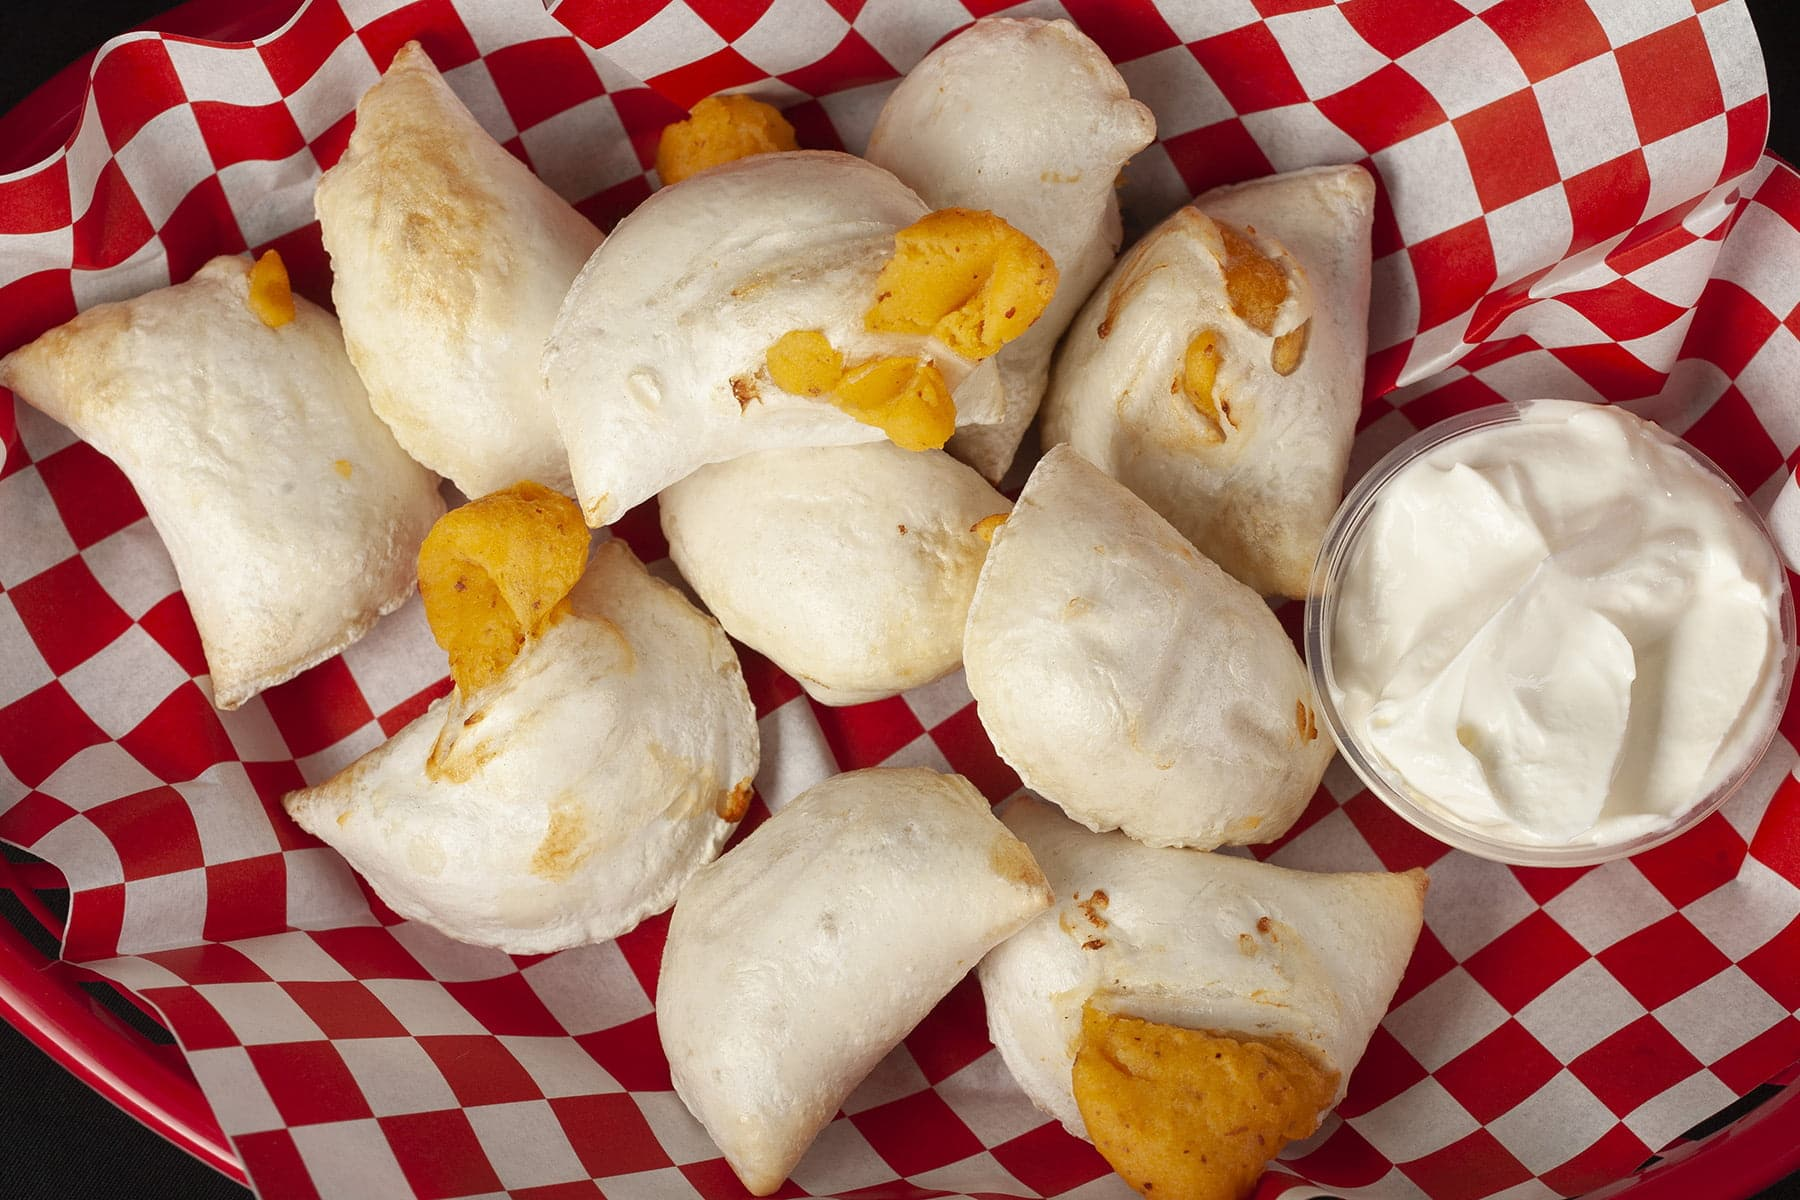 A basket of perogies. Most are split open, with cheese filling oozing out.